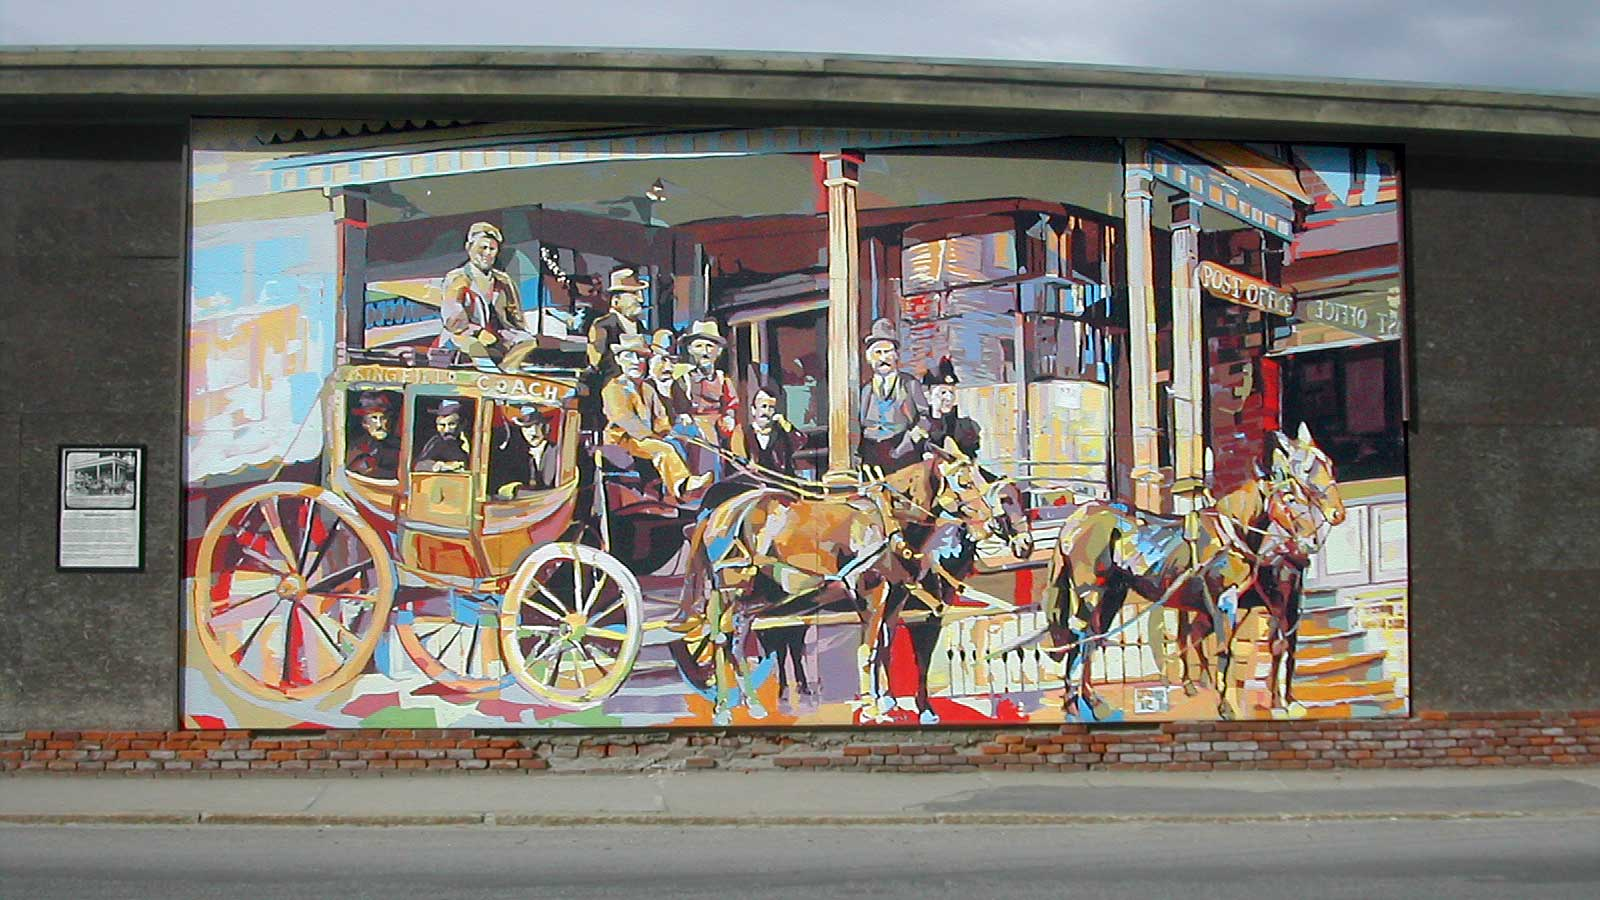 Springfield vermont news downtown mural nods to historic past for 6 blocks from downtown mural